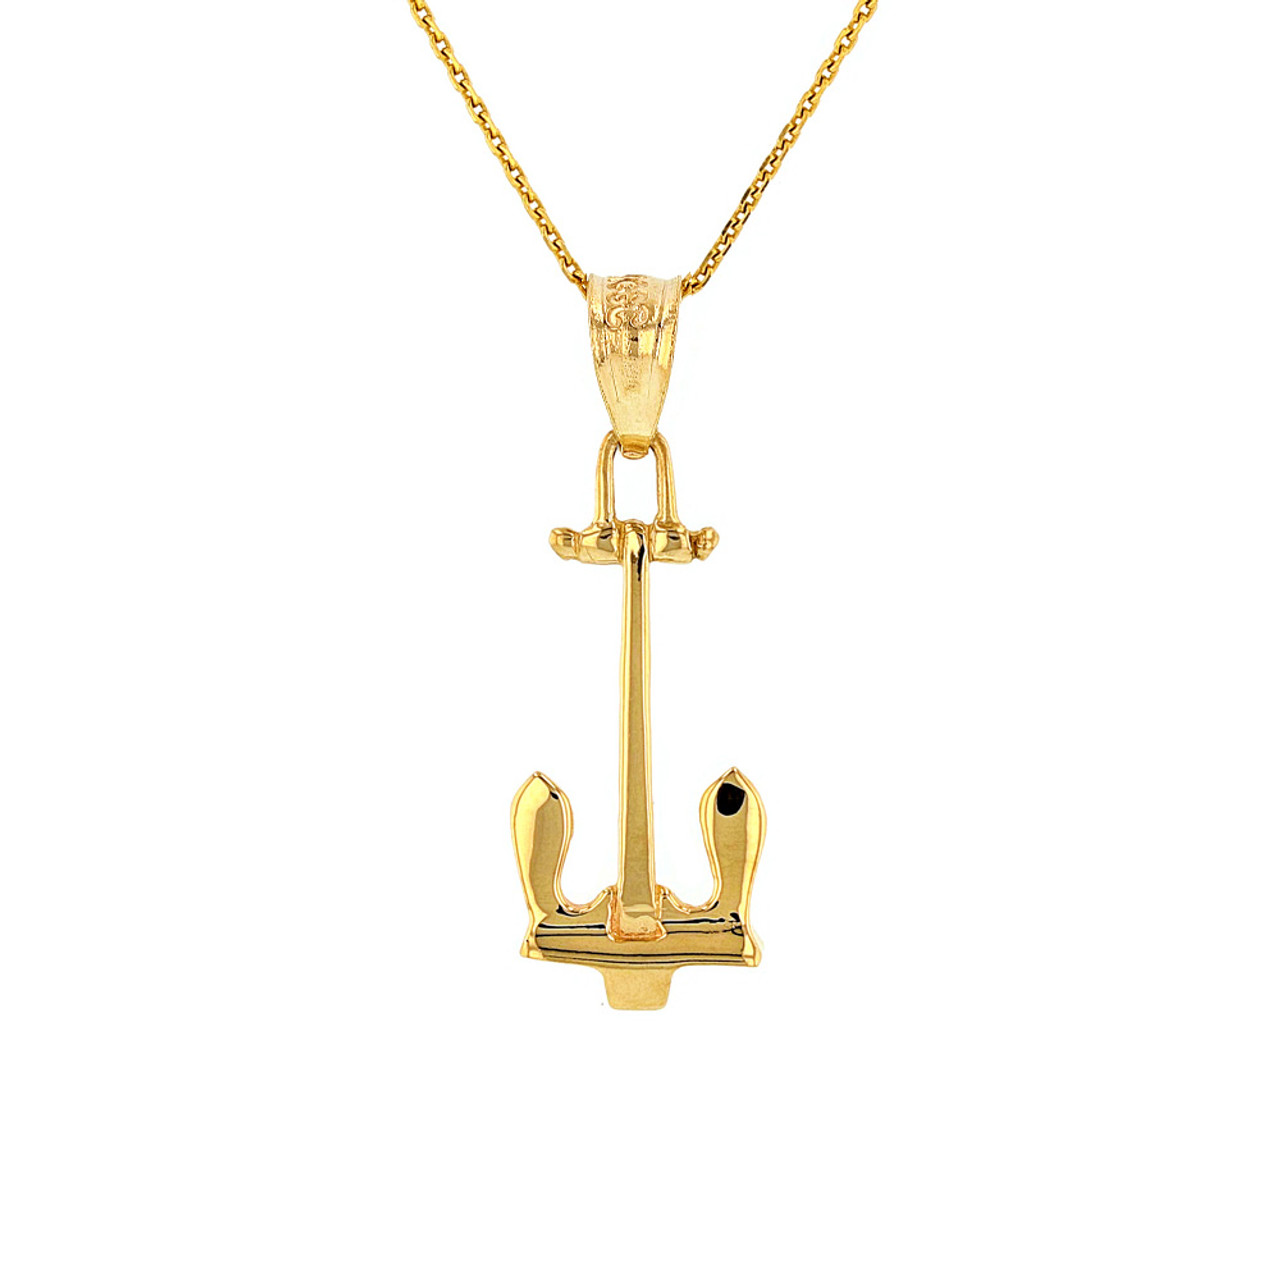 Solid yellow gold us navy stockless anchor pendant necklace aloadofball Images